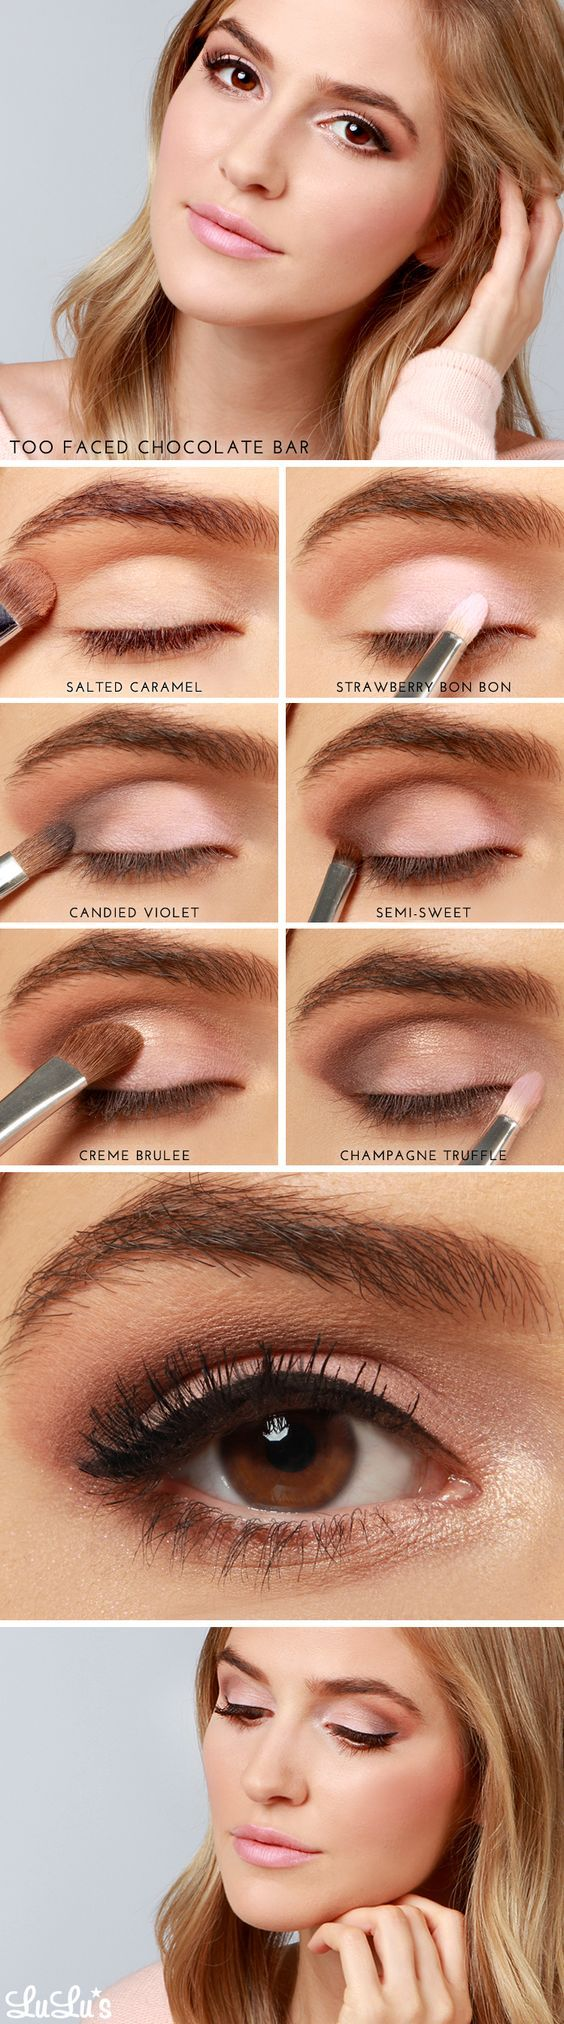 Makeup ideas 2017 2018 fashionble natural eye makeup tutorials fashionble natural eye makeup tutorials for work baditri Choice Image